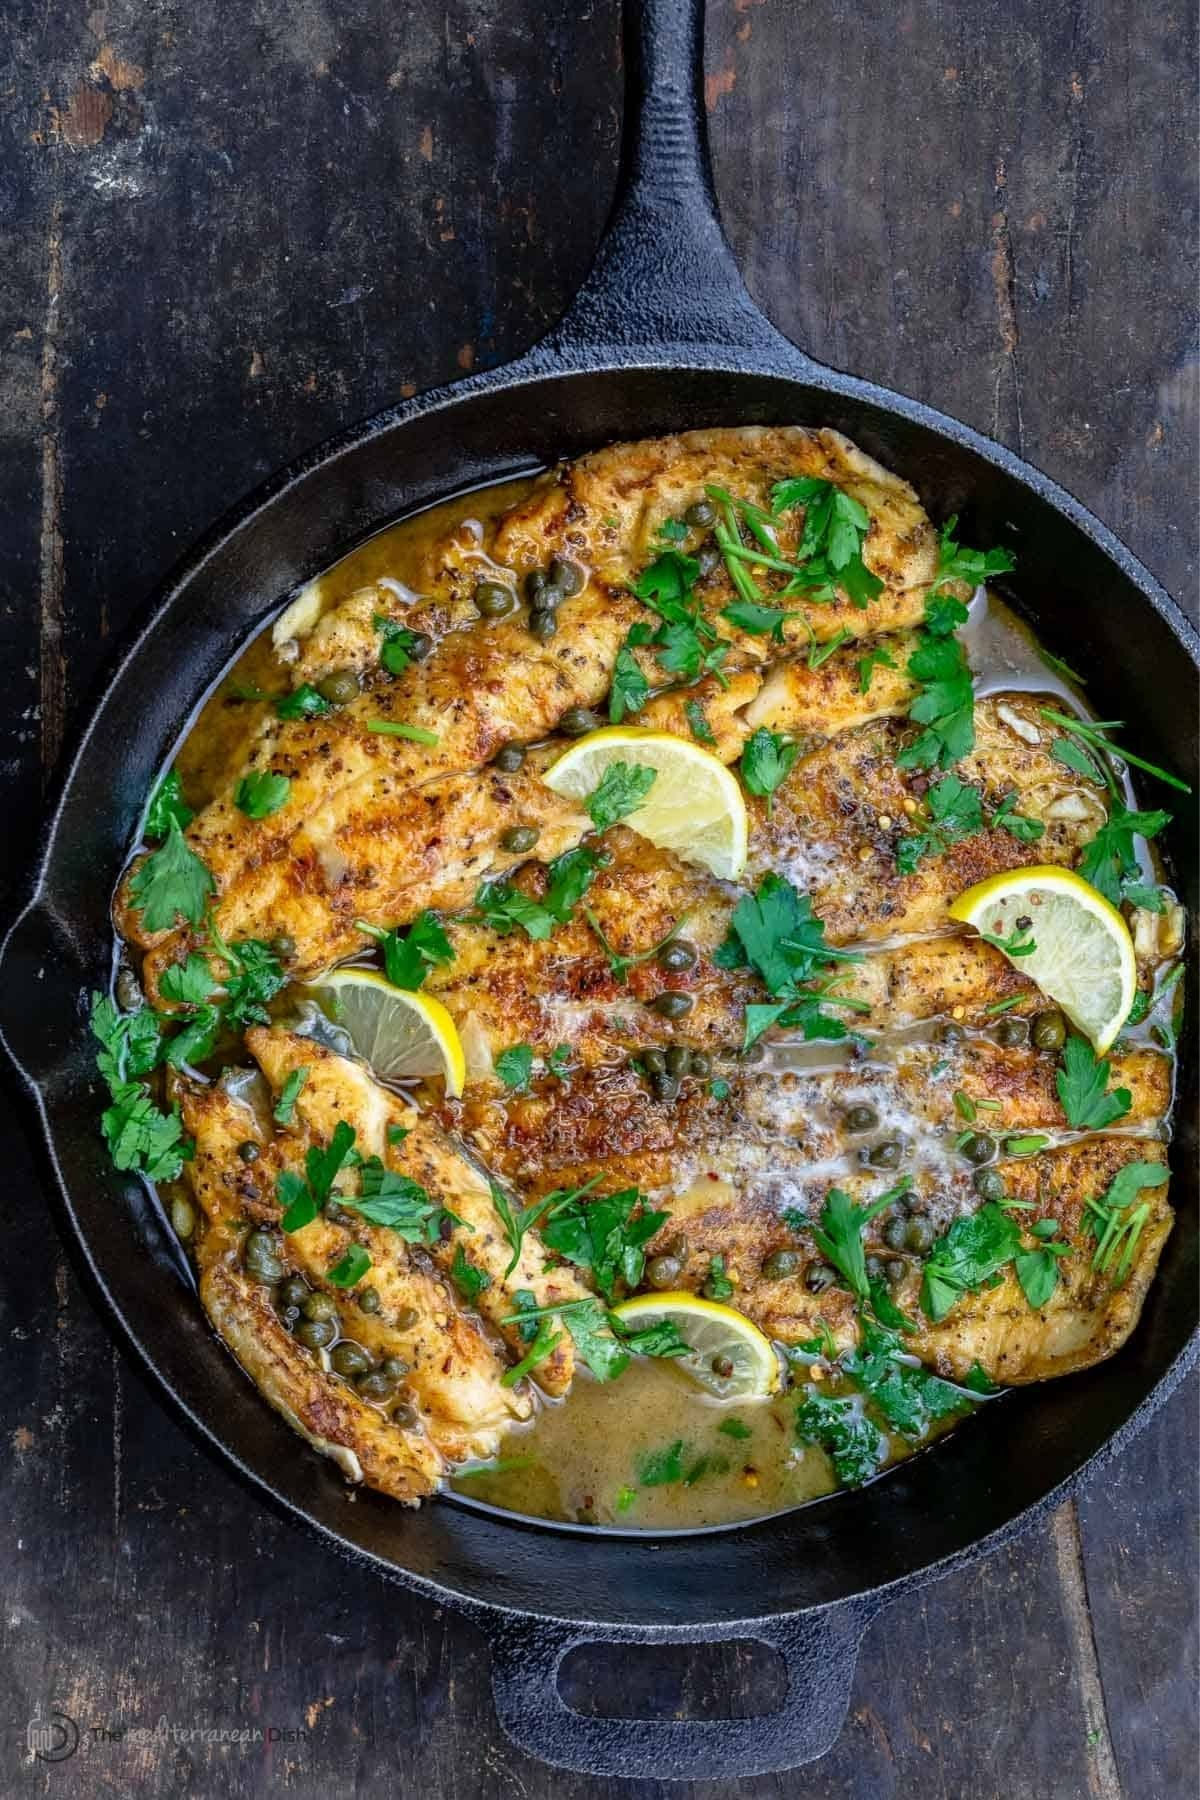 Fish piccata in cast iron skillet on wood table